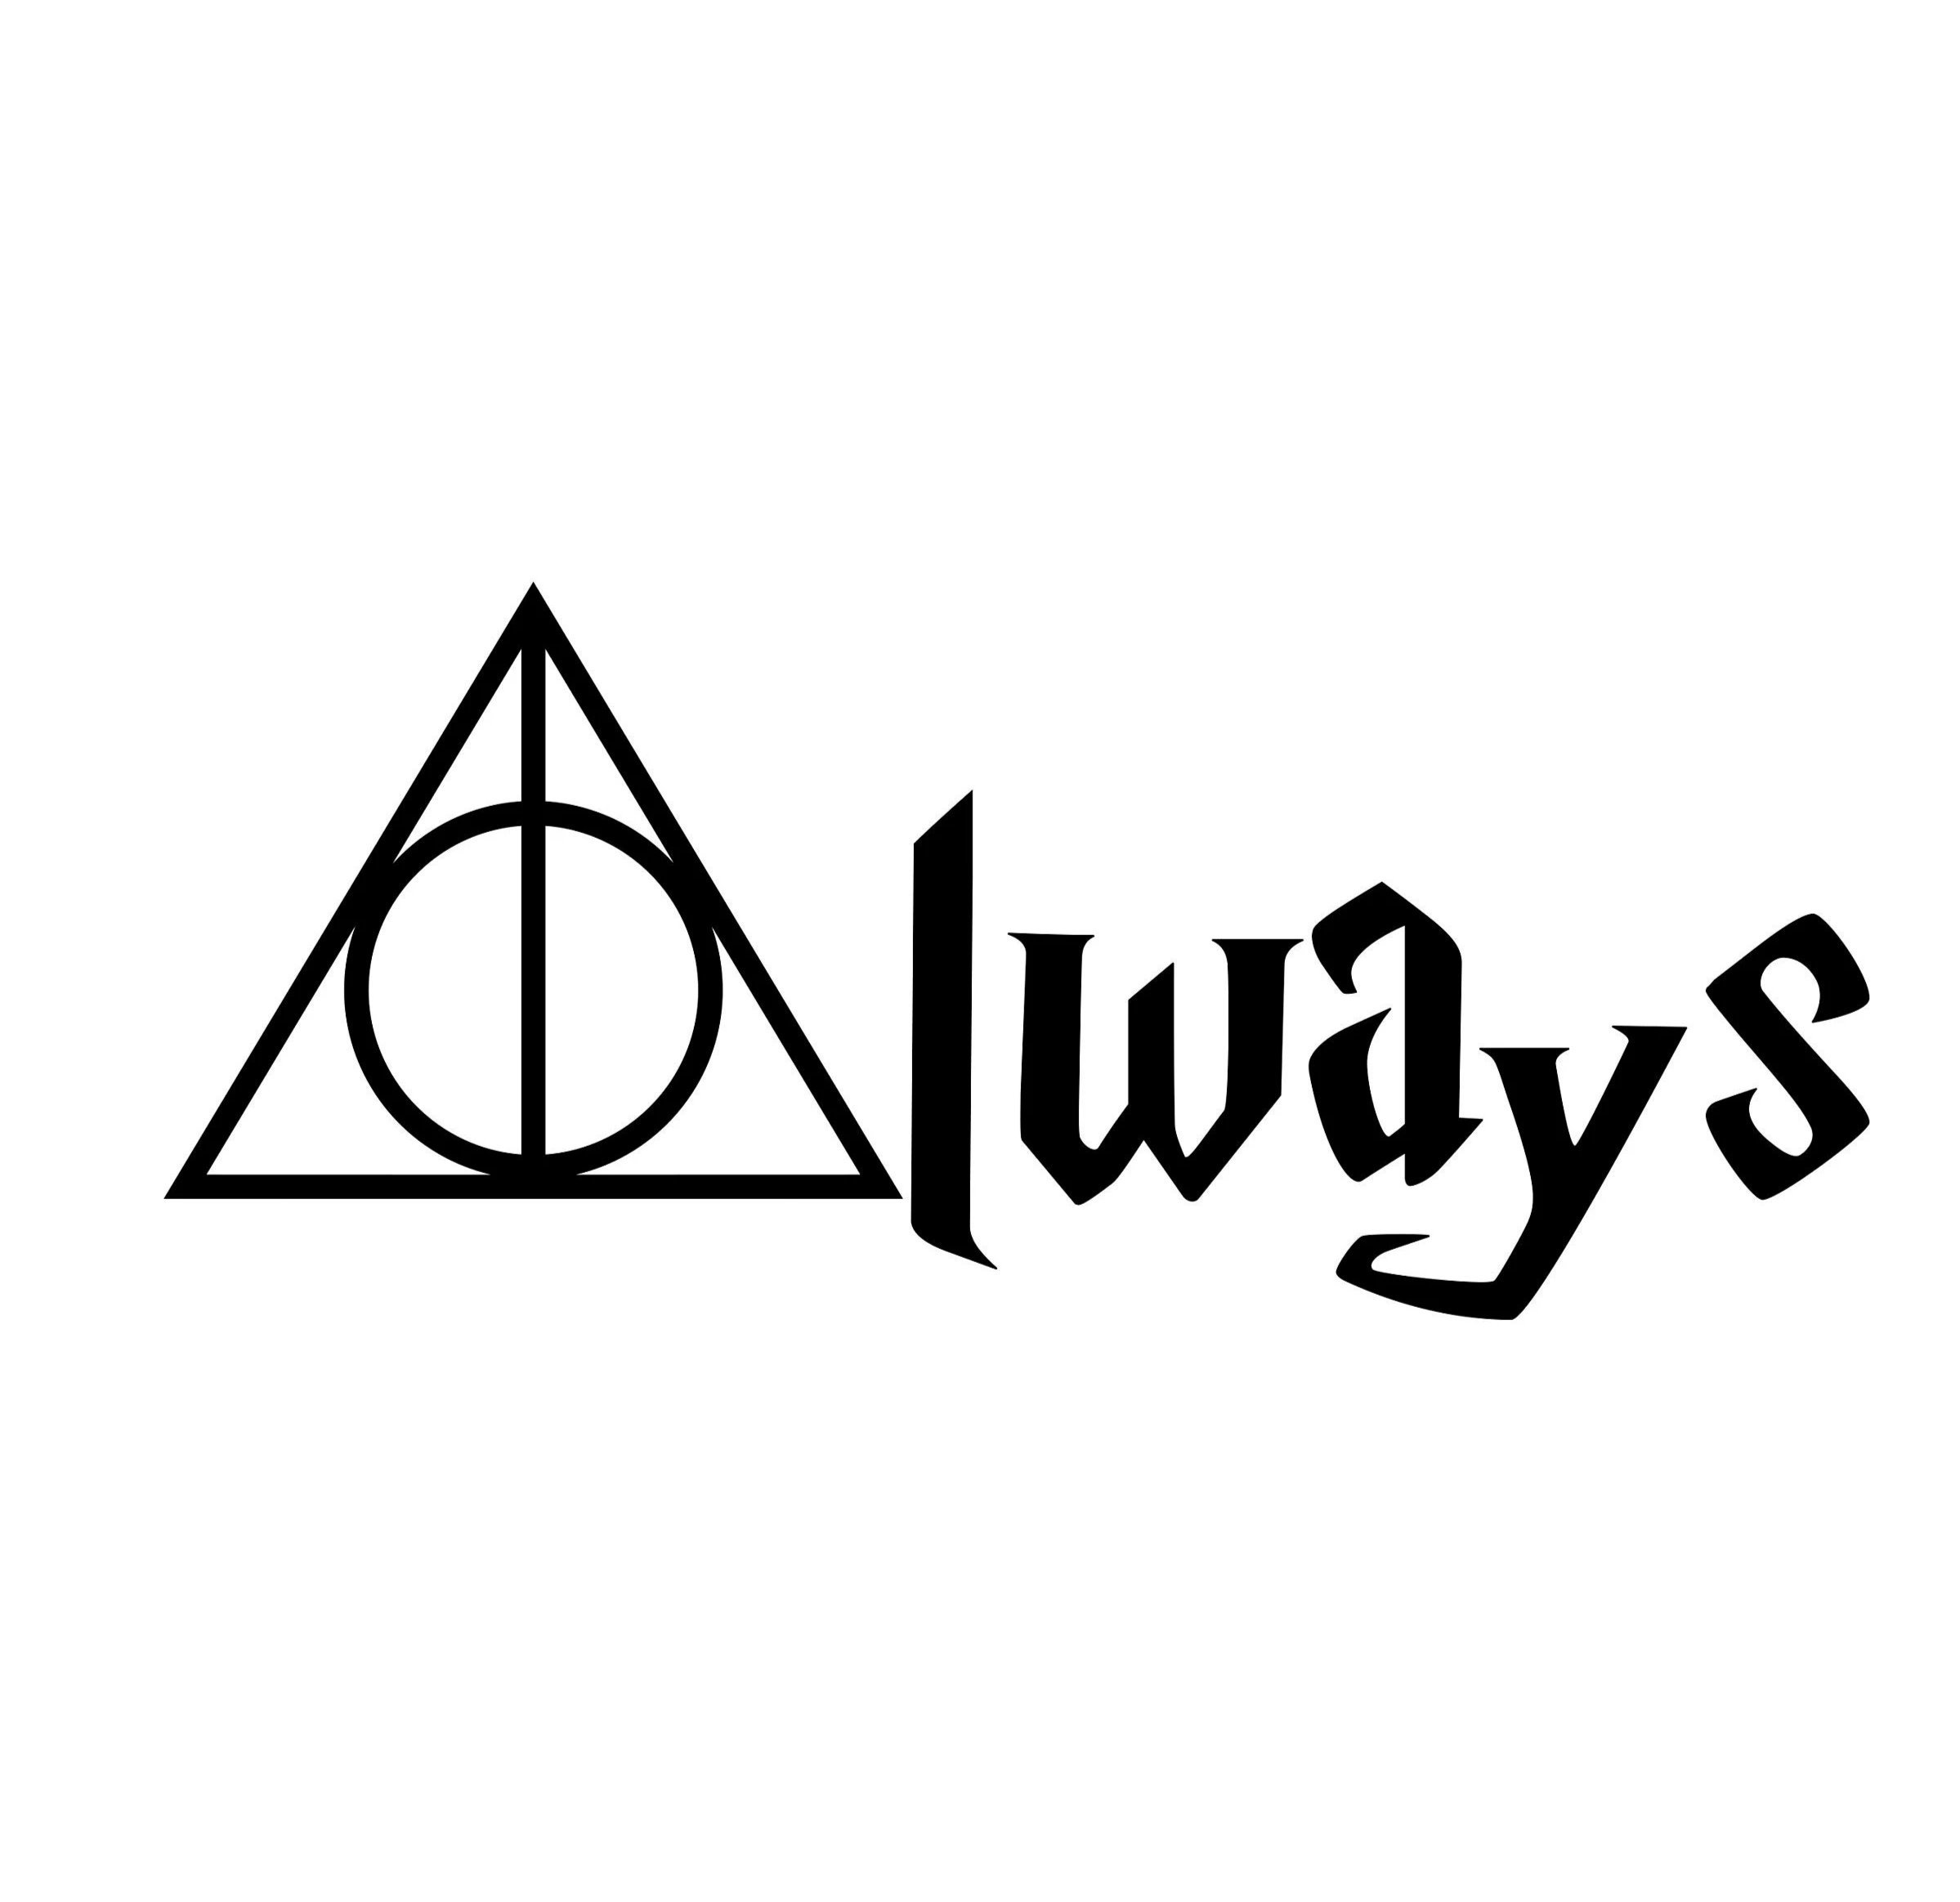 harry potter always svg #793, Download drawings